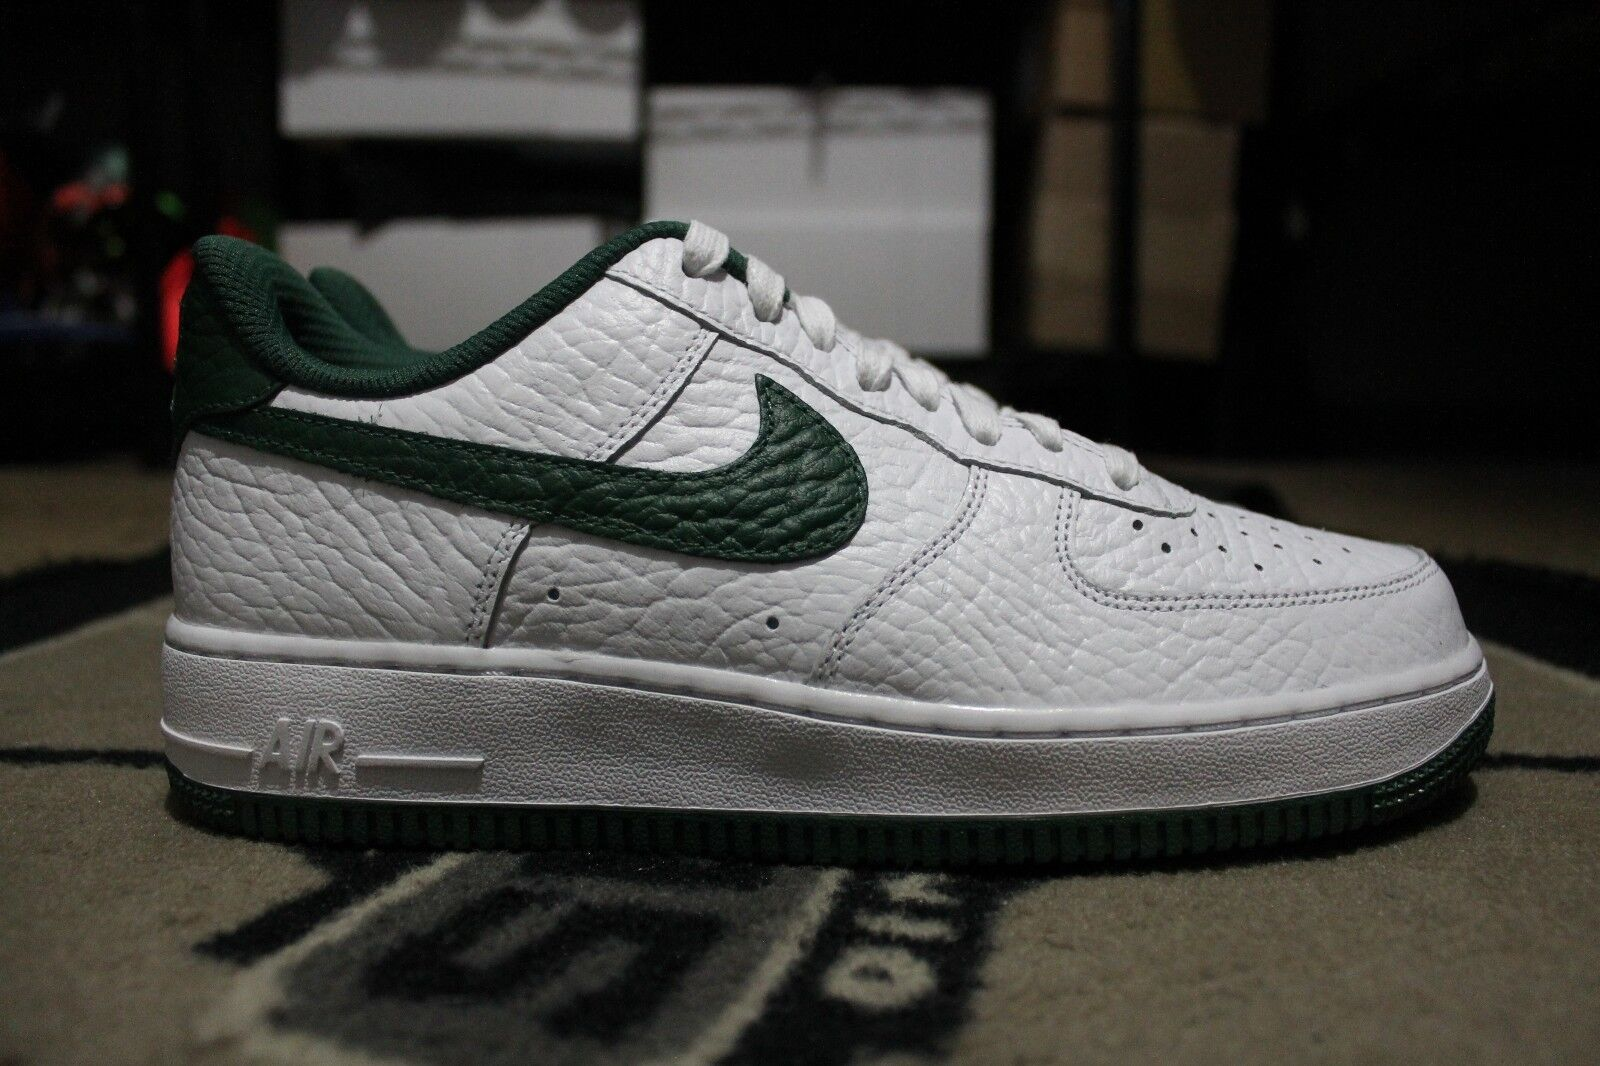 New Nike iD Air Force One 1 Low NBA Size Milwaukee Bucks Size 7.5 White/Green